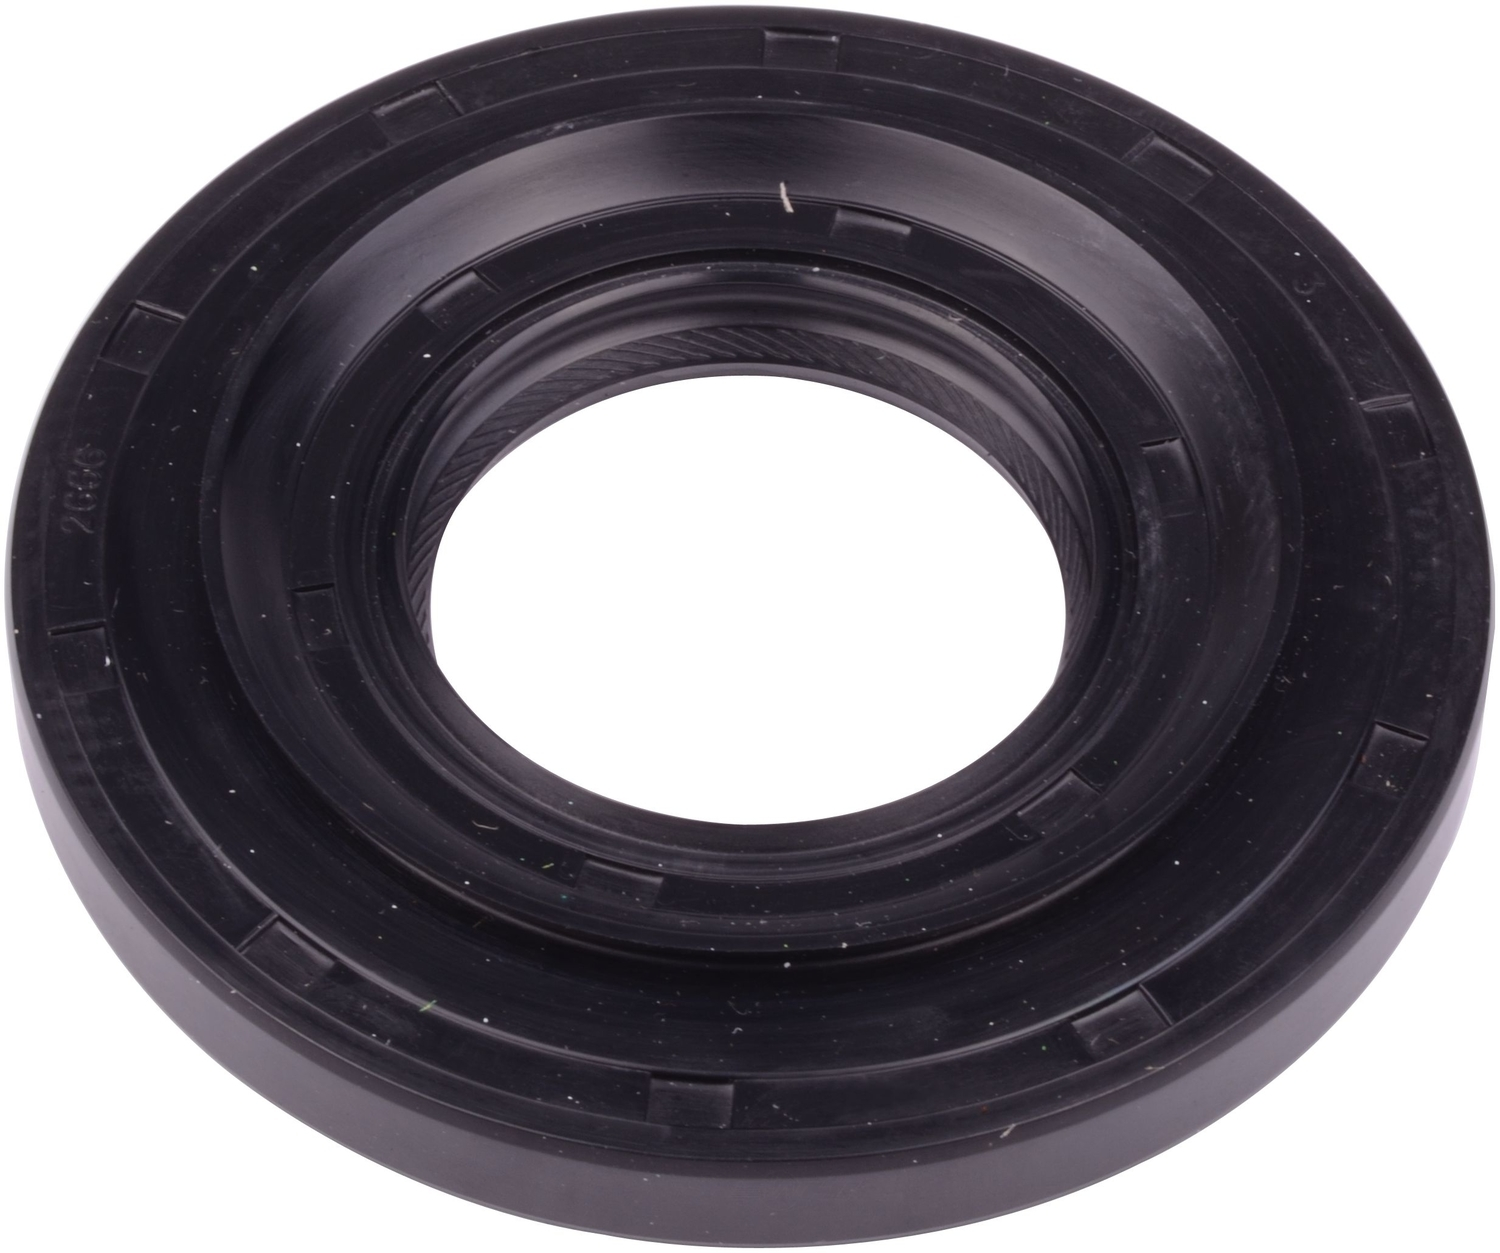 SKF (CHICAGO RAWHIDE) - Manual Trans Output Shaft Seal - SKF 13849